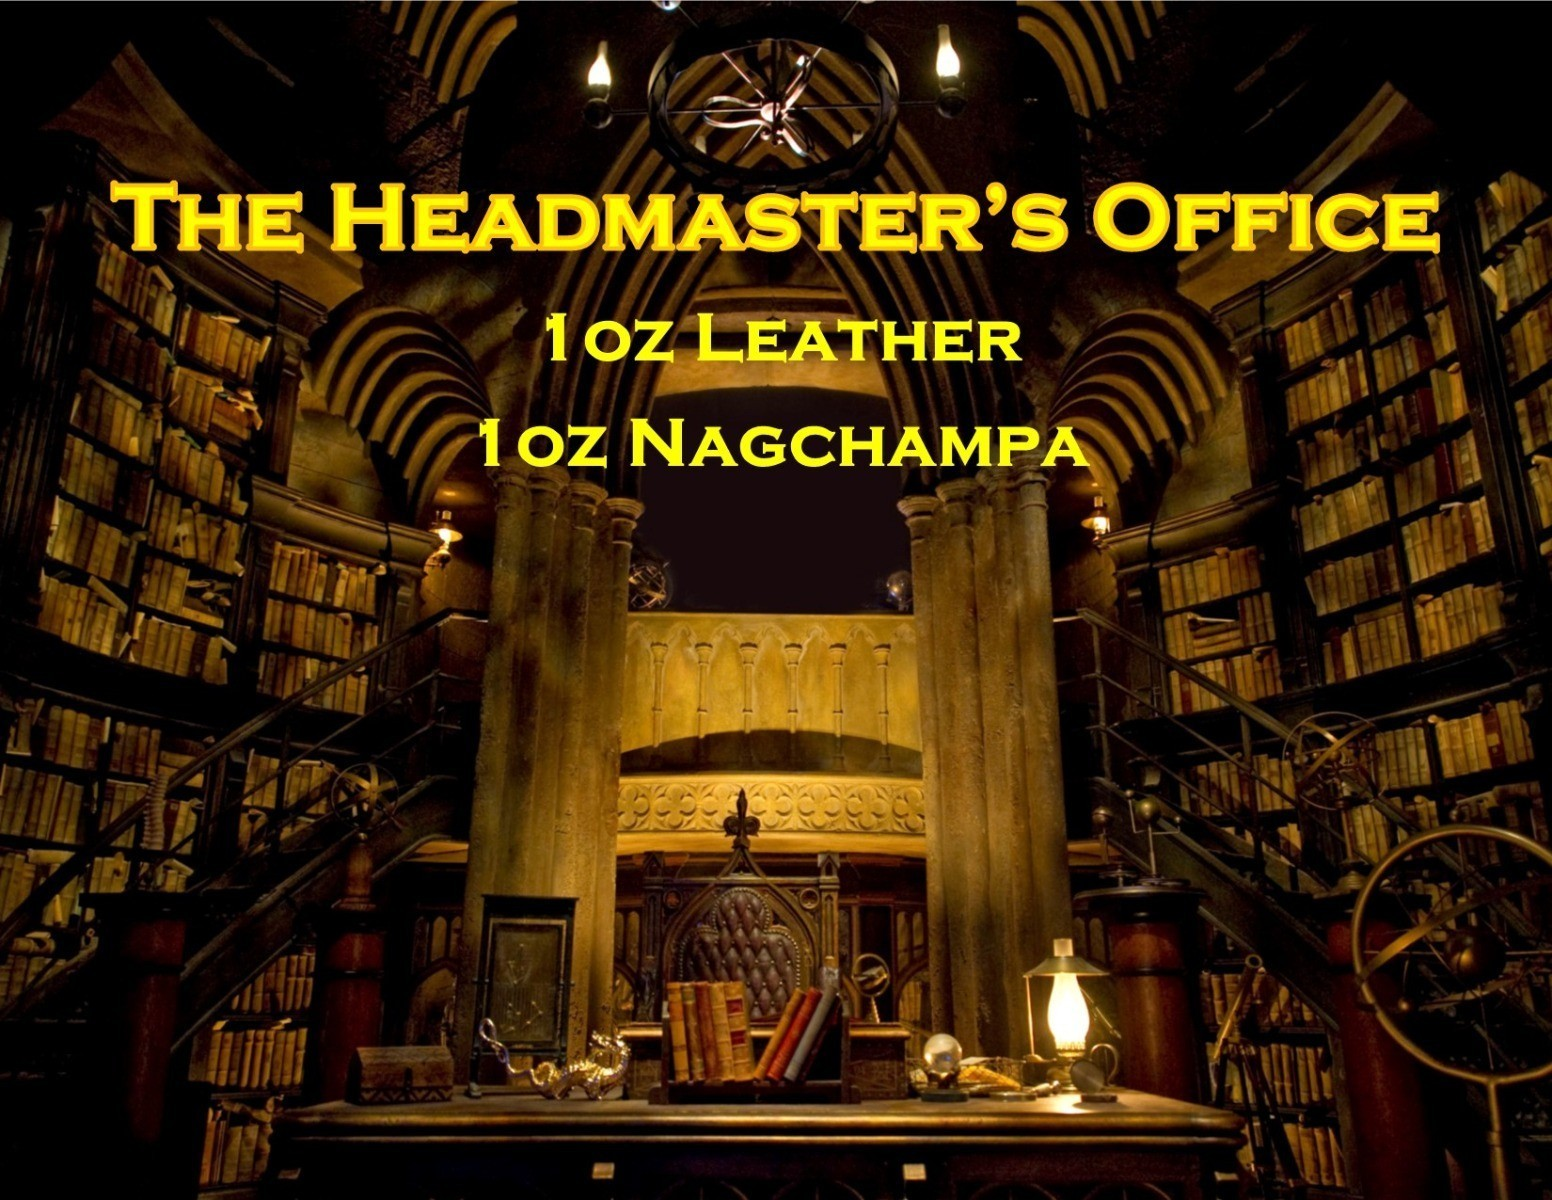 Headmaster's Office